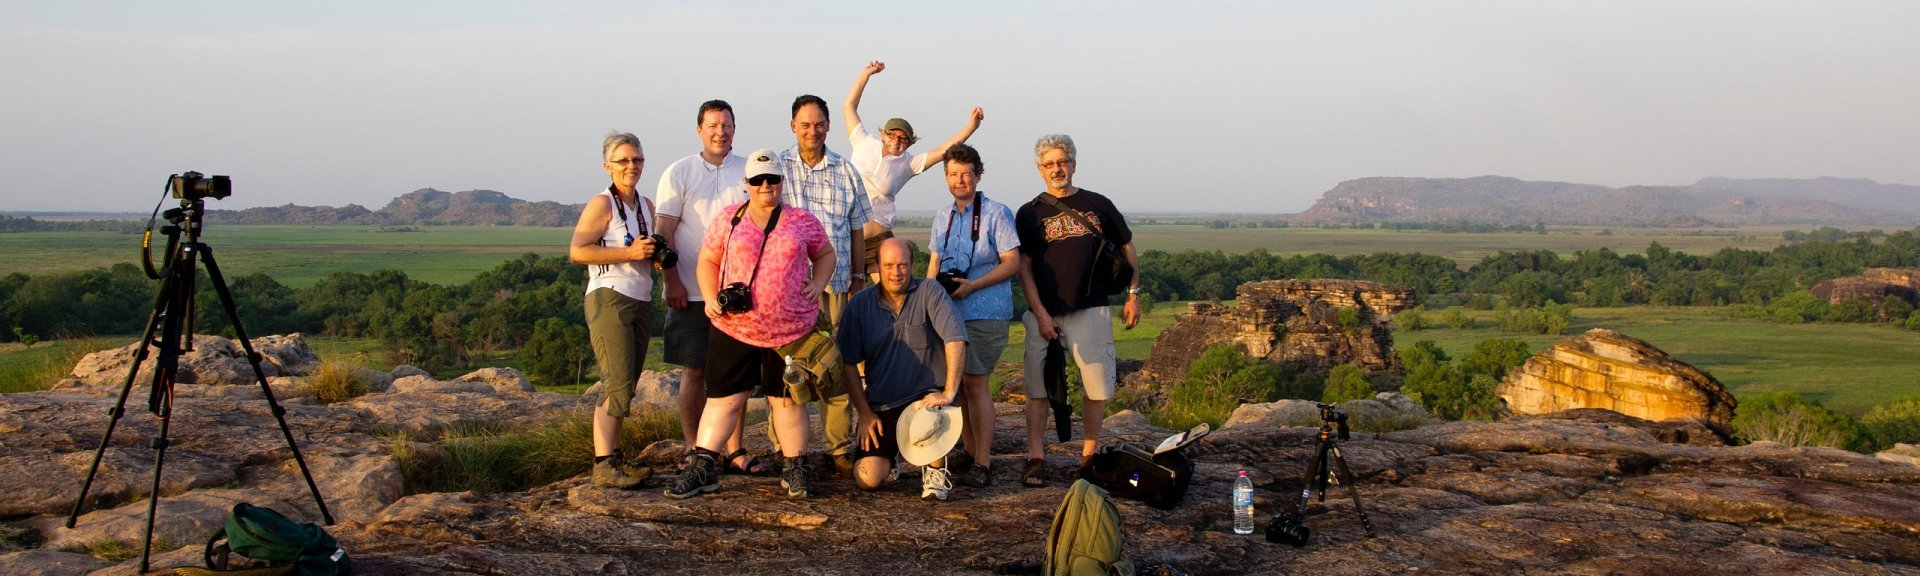 Photography tour at Ubirr. Photo: Andrew Goodall